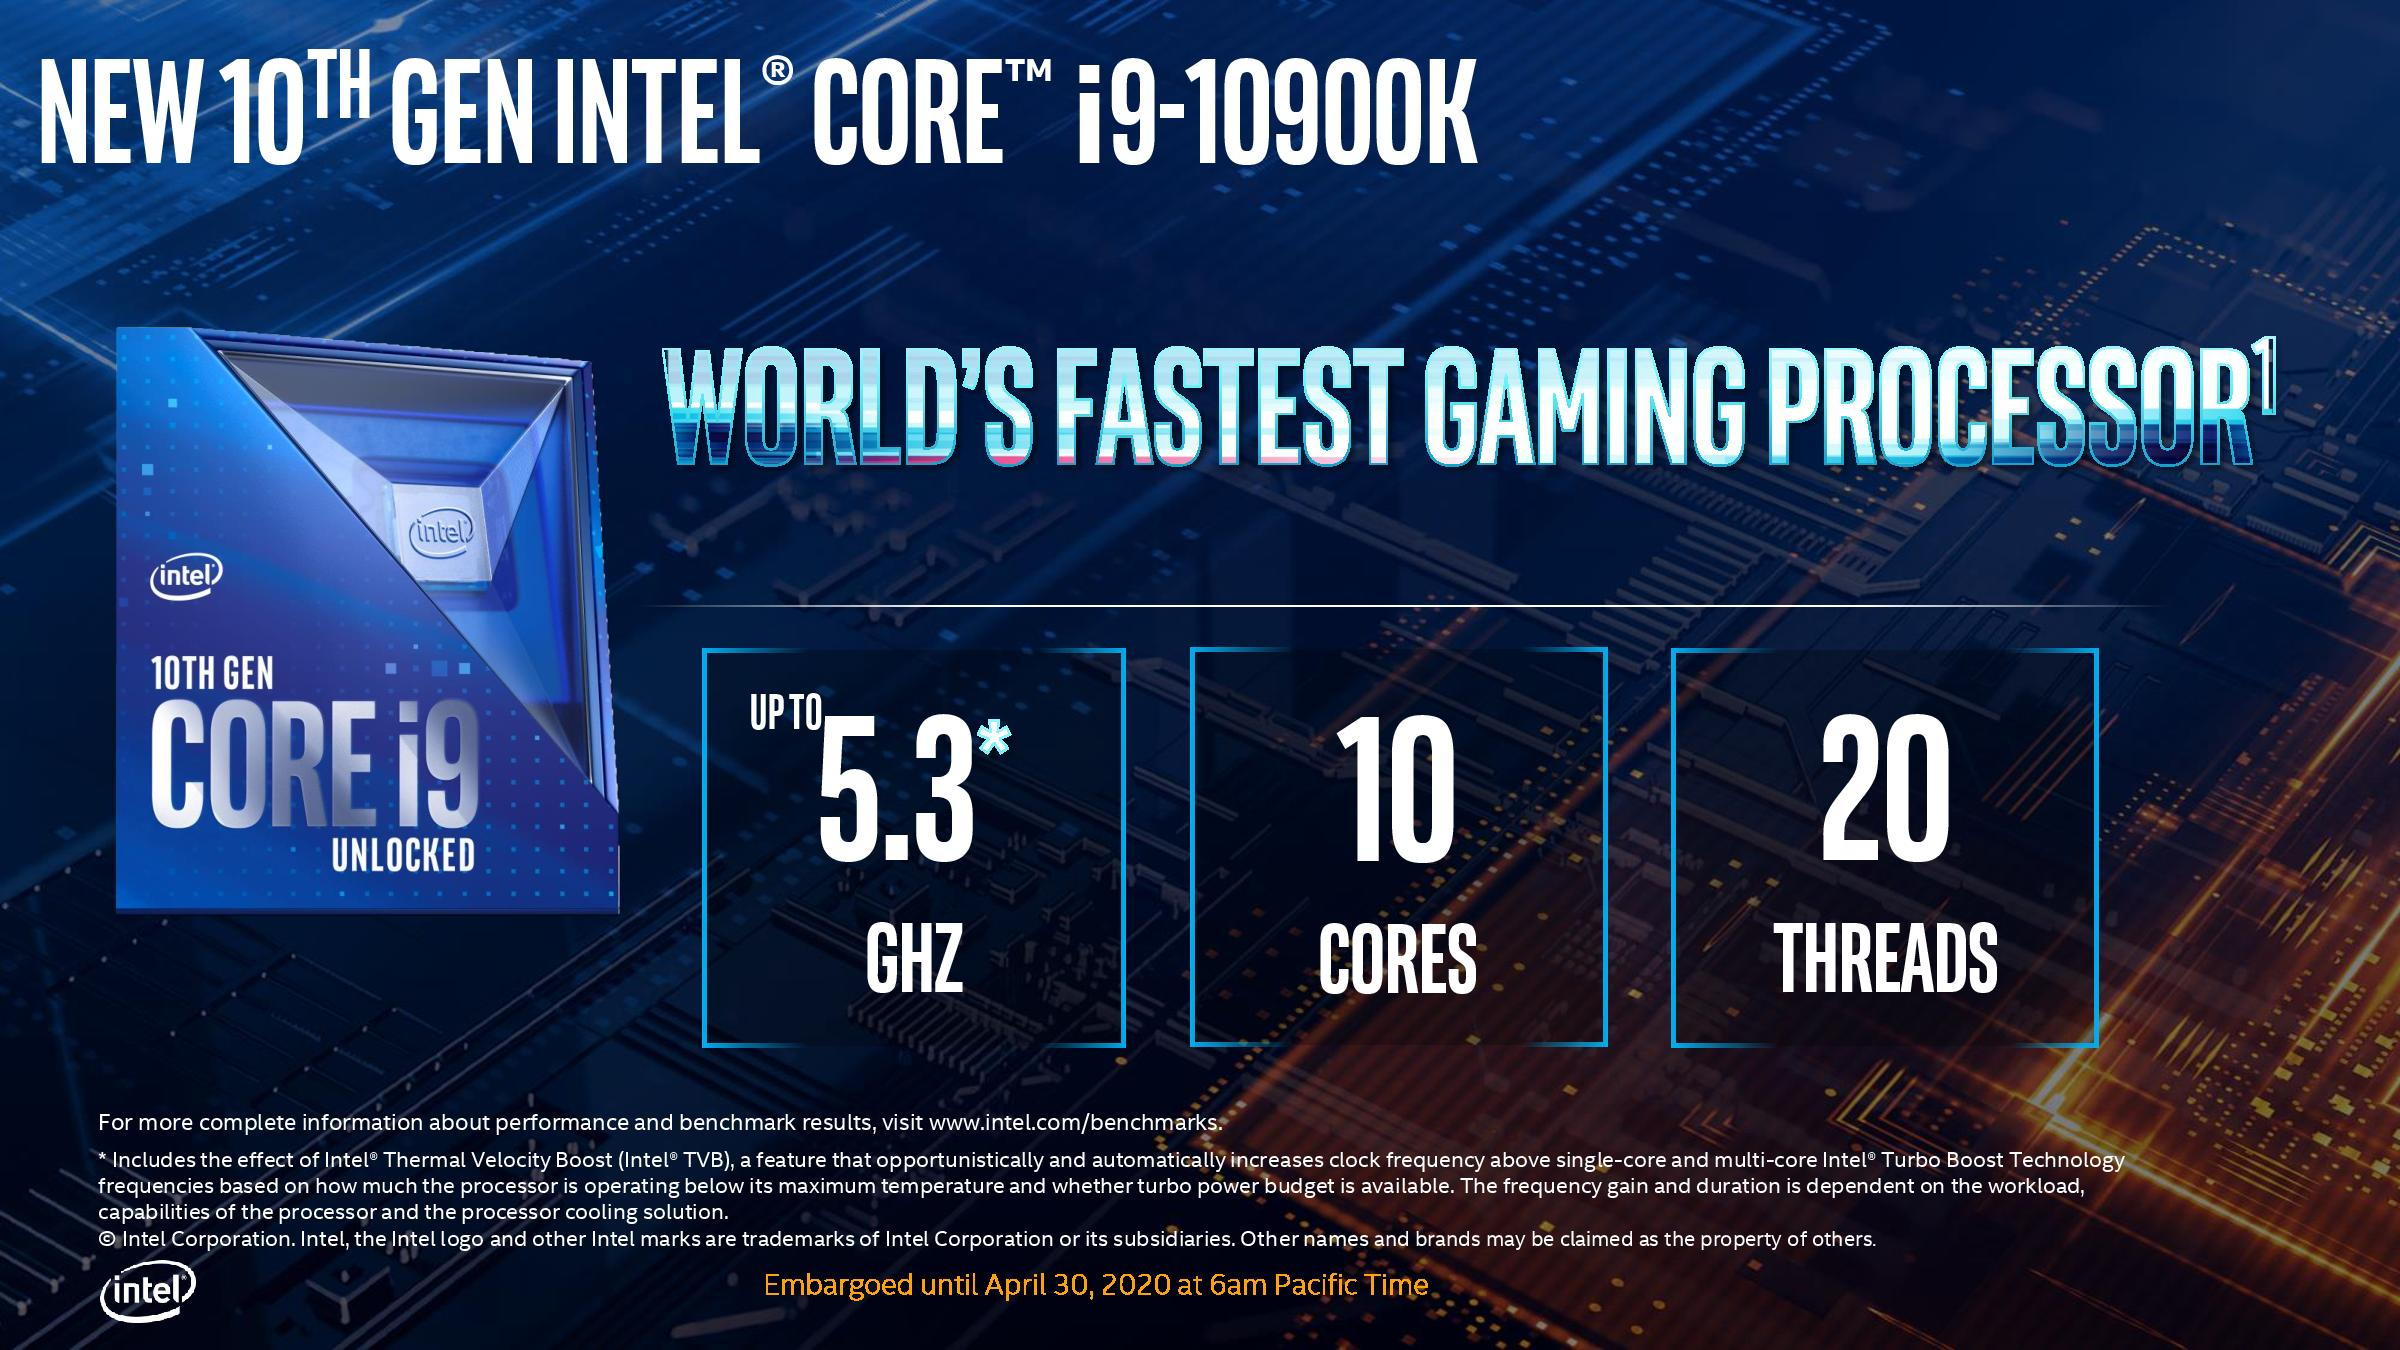 Intel Core I9 10900k Beats The Amd Fx 9590 To Become The World S Best X86 Space Heater Hardware Times